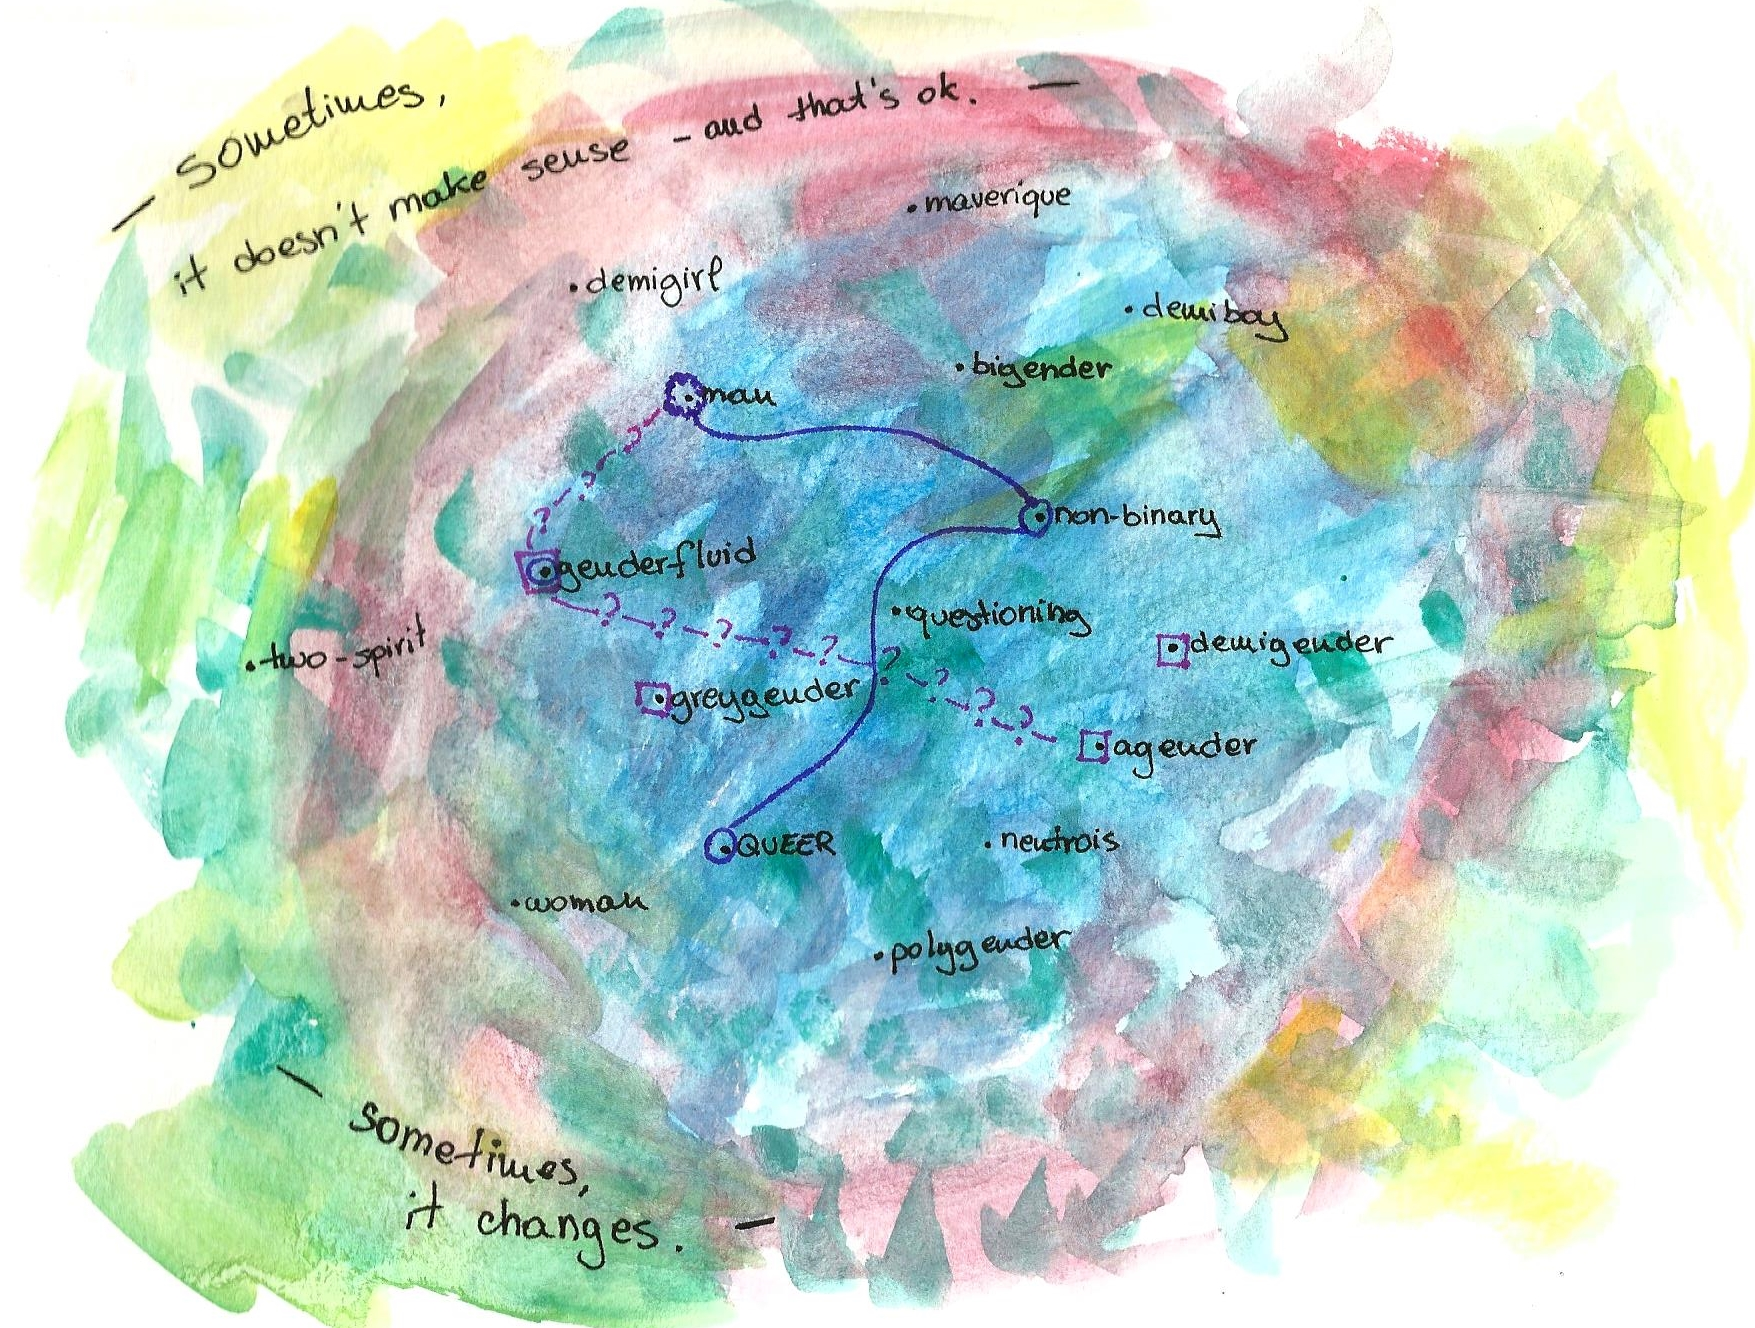 "A large abstract mass of colour with writing on it. At the top, text reads ""Sometimes, it doesn't make sense - and that's ok."" At the bottom: ""sometimes, it changes."" Words are scattered throughtout the colourful canvas. Demigirl, maverique, bigender, man, two-spirit, genderfluid, non-binary, questioning, demigender, agender, greygender, queer, neutrois, polygender, and woman. Lines join some of them, while others are left untouched. A bold purple line joins man, which is circled in a shakier hand, with non-binary and queer. Man is also connected to a pink line interrupted by question marks, which joins to genderfluid and agender. Genderfluid is circled in purple as well as having a pink square around it. On the side, not connected to others, demigender has a pink square around it."